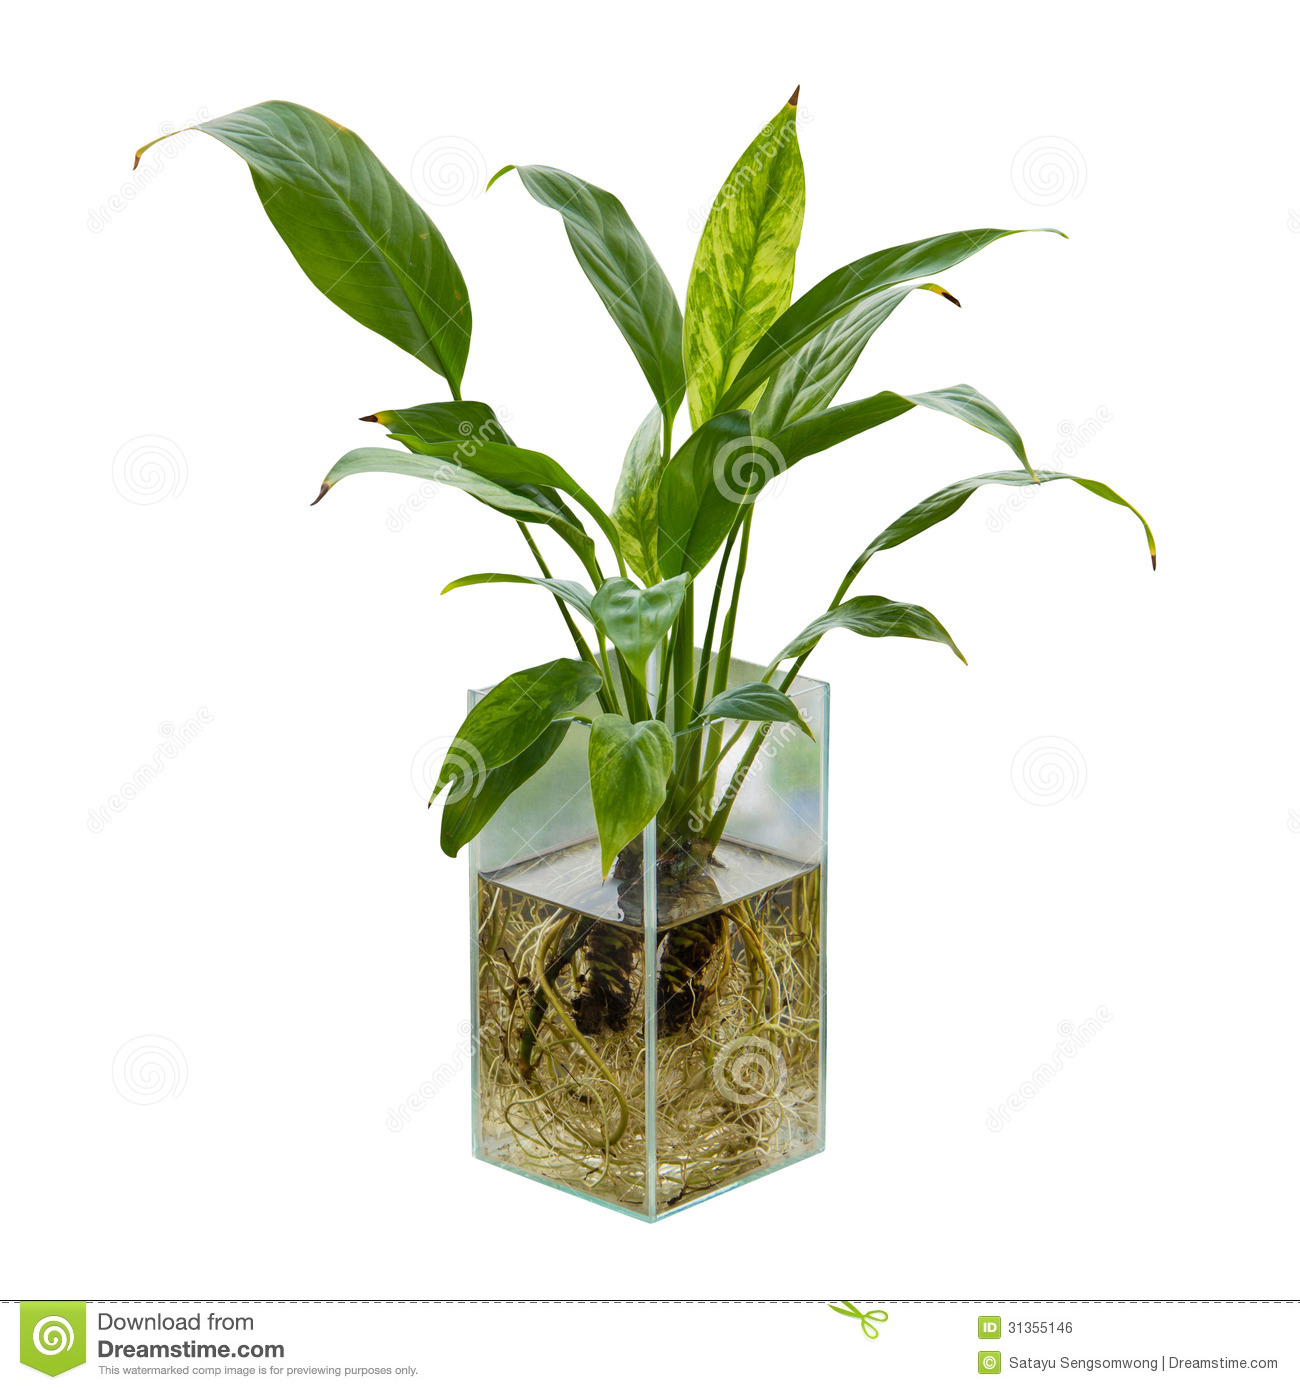 Spathiphyllum Or Peace Lily Stock Photo Image 31355146